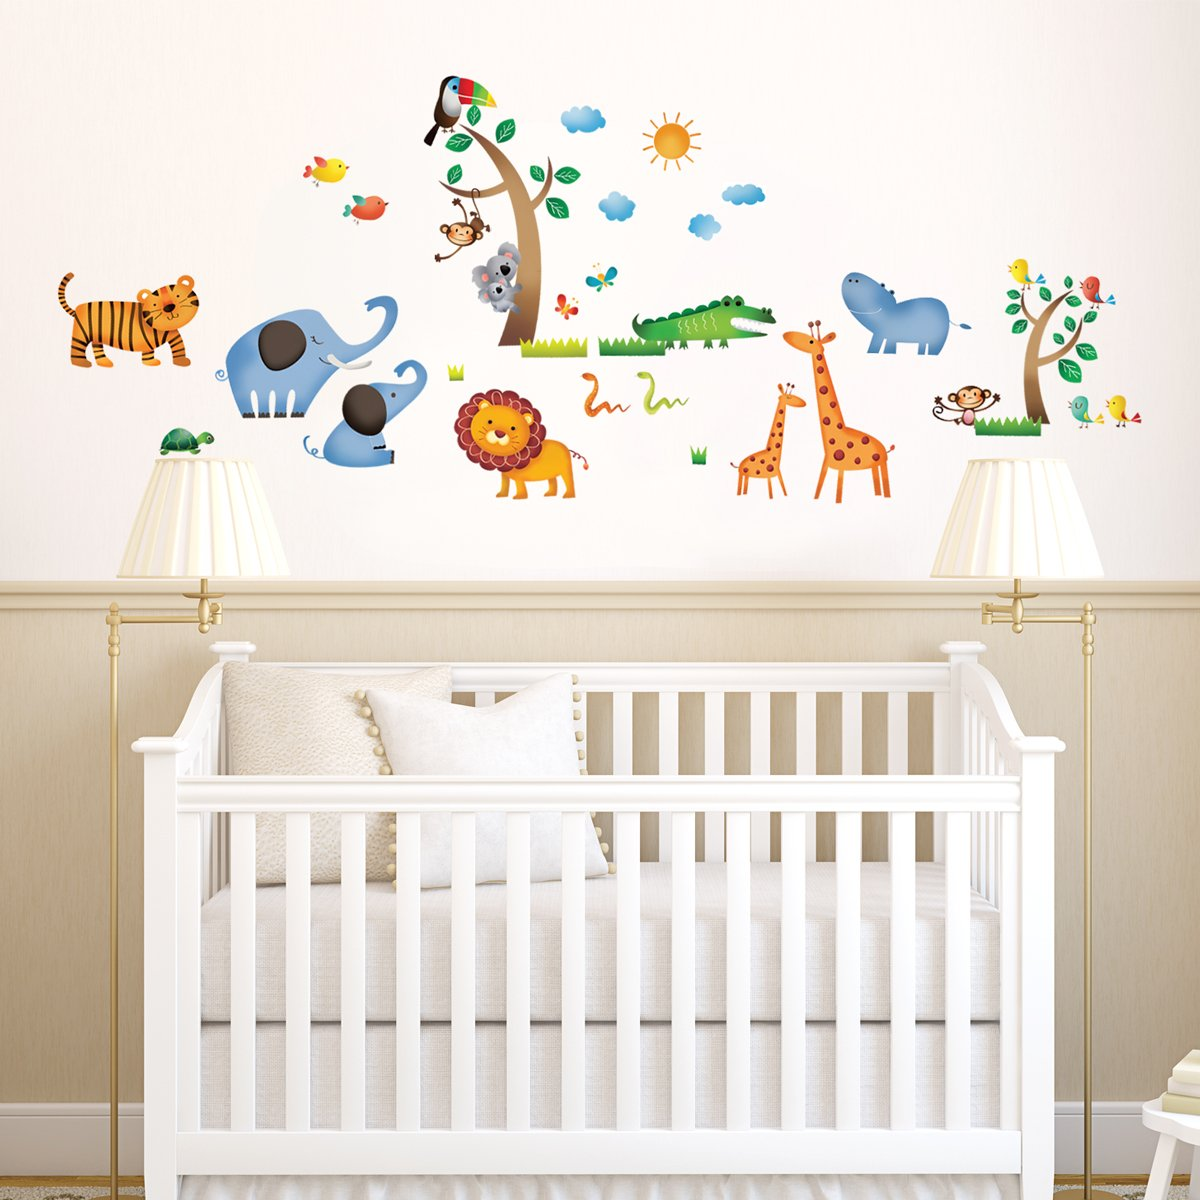 decowall dw 1206 wild jungle animals kids wall stickers wall wild jungle animals kids wall stickers wall decals peel and stick removable wall stickers for kids nursery bedroom living room amazon co uk baby